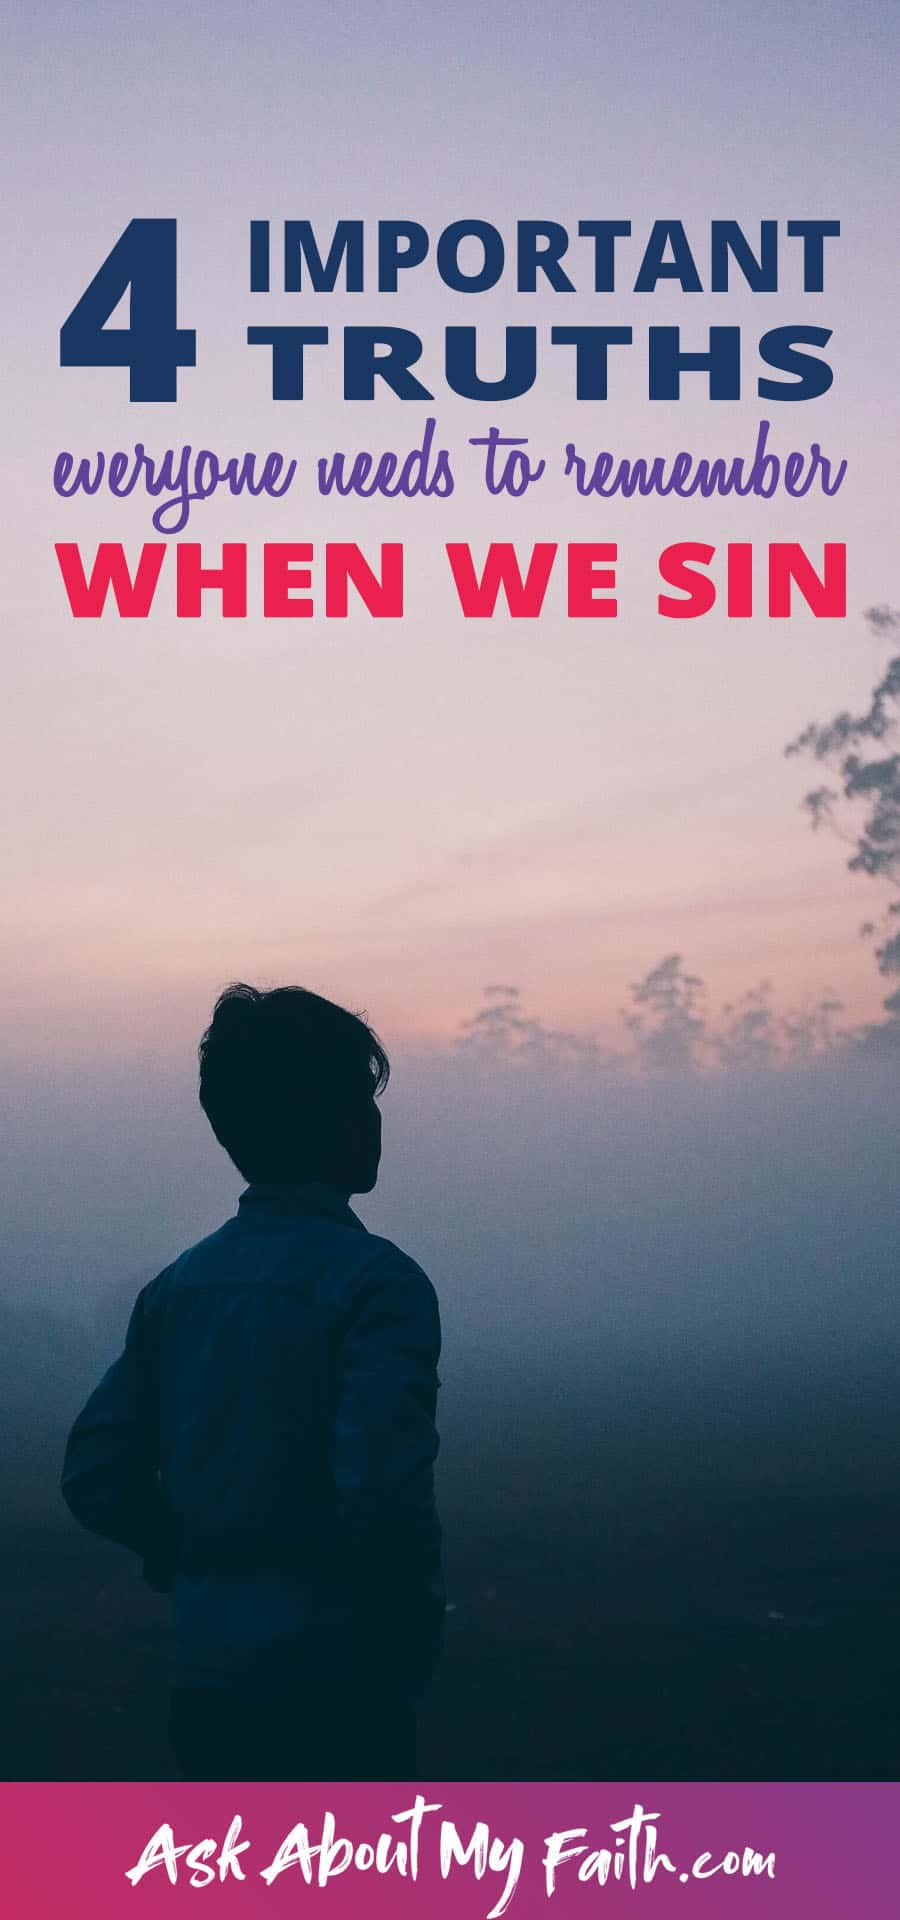 4 Important Truths to Remember When We Sin | Forgiveness | Christian Faith Resources and Devotionals | Grow Your Faith | New Christians